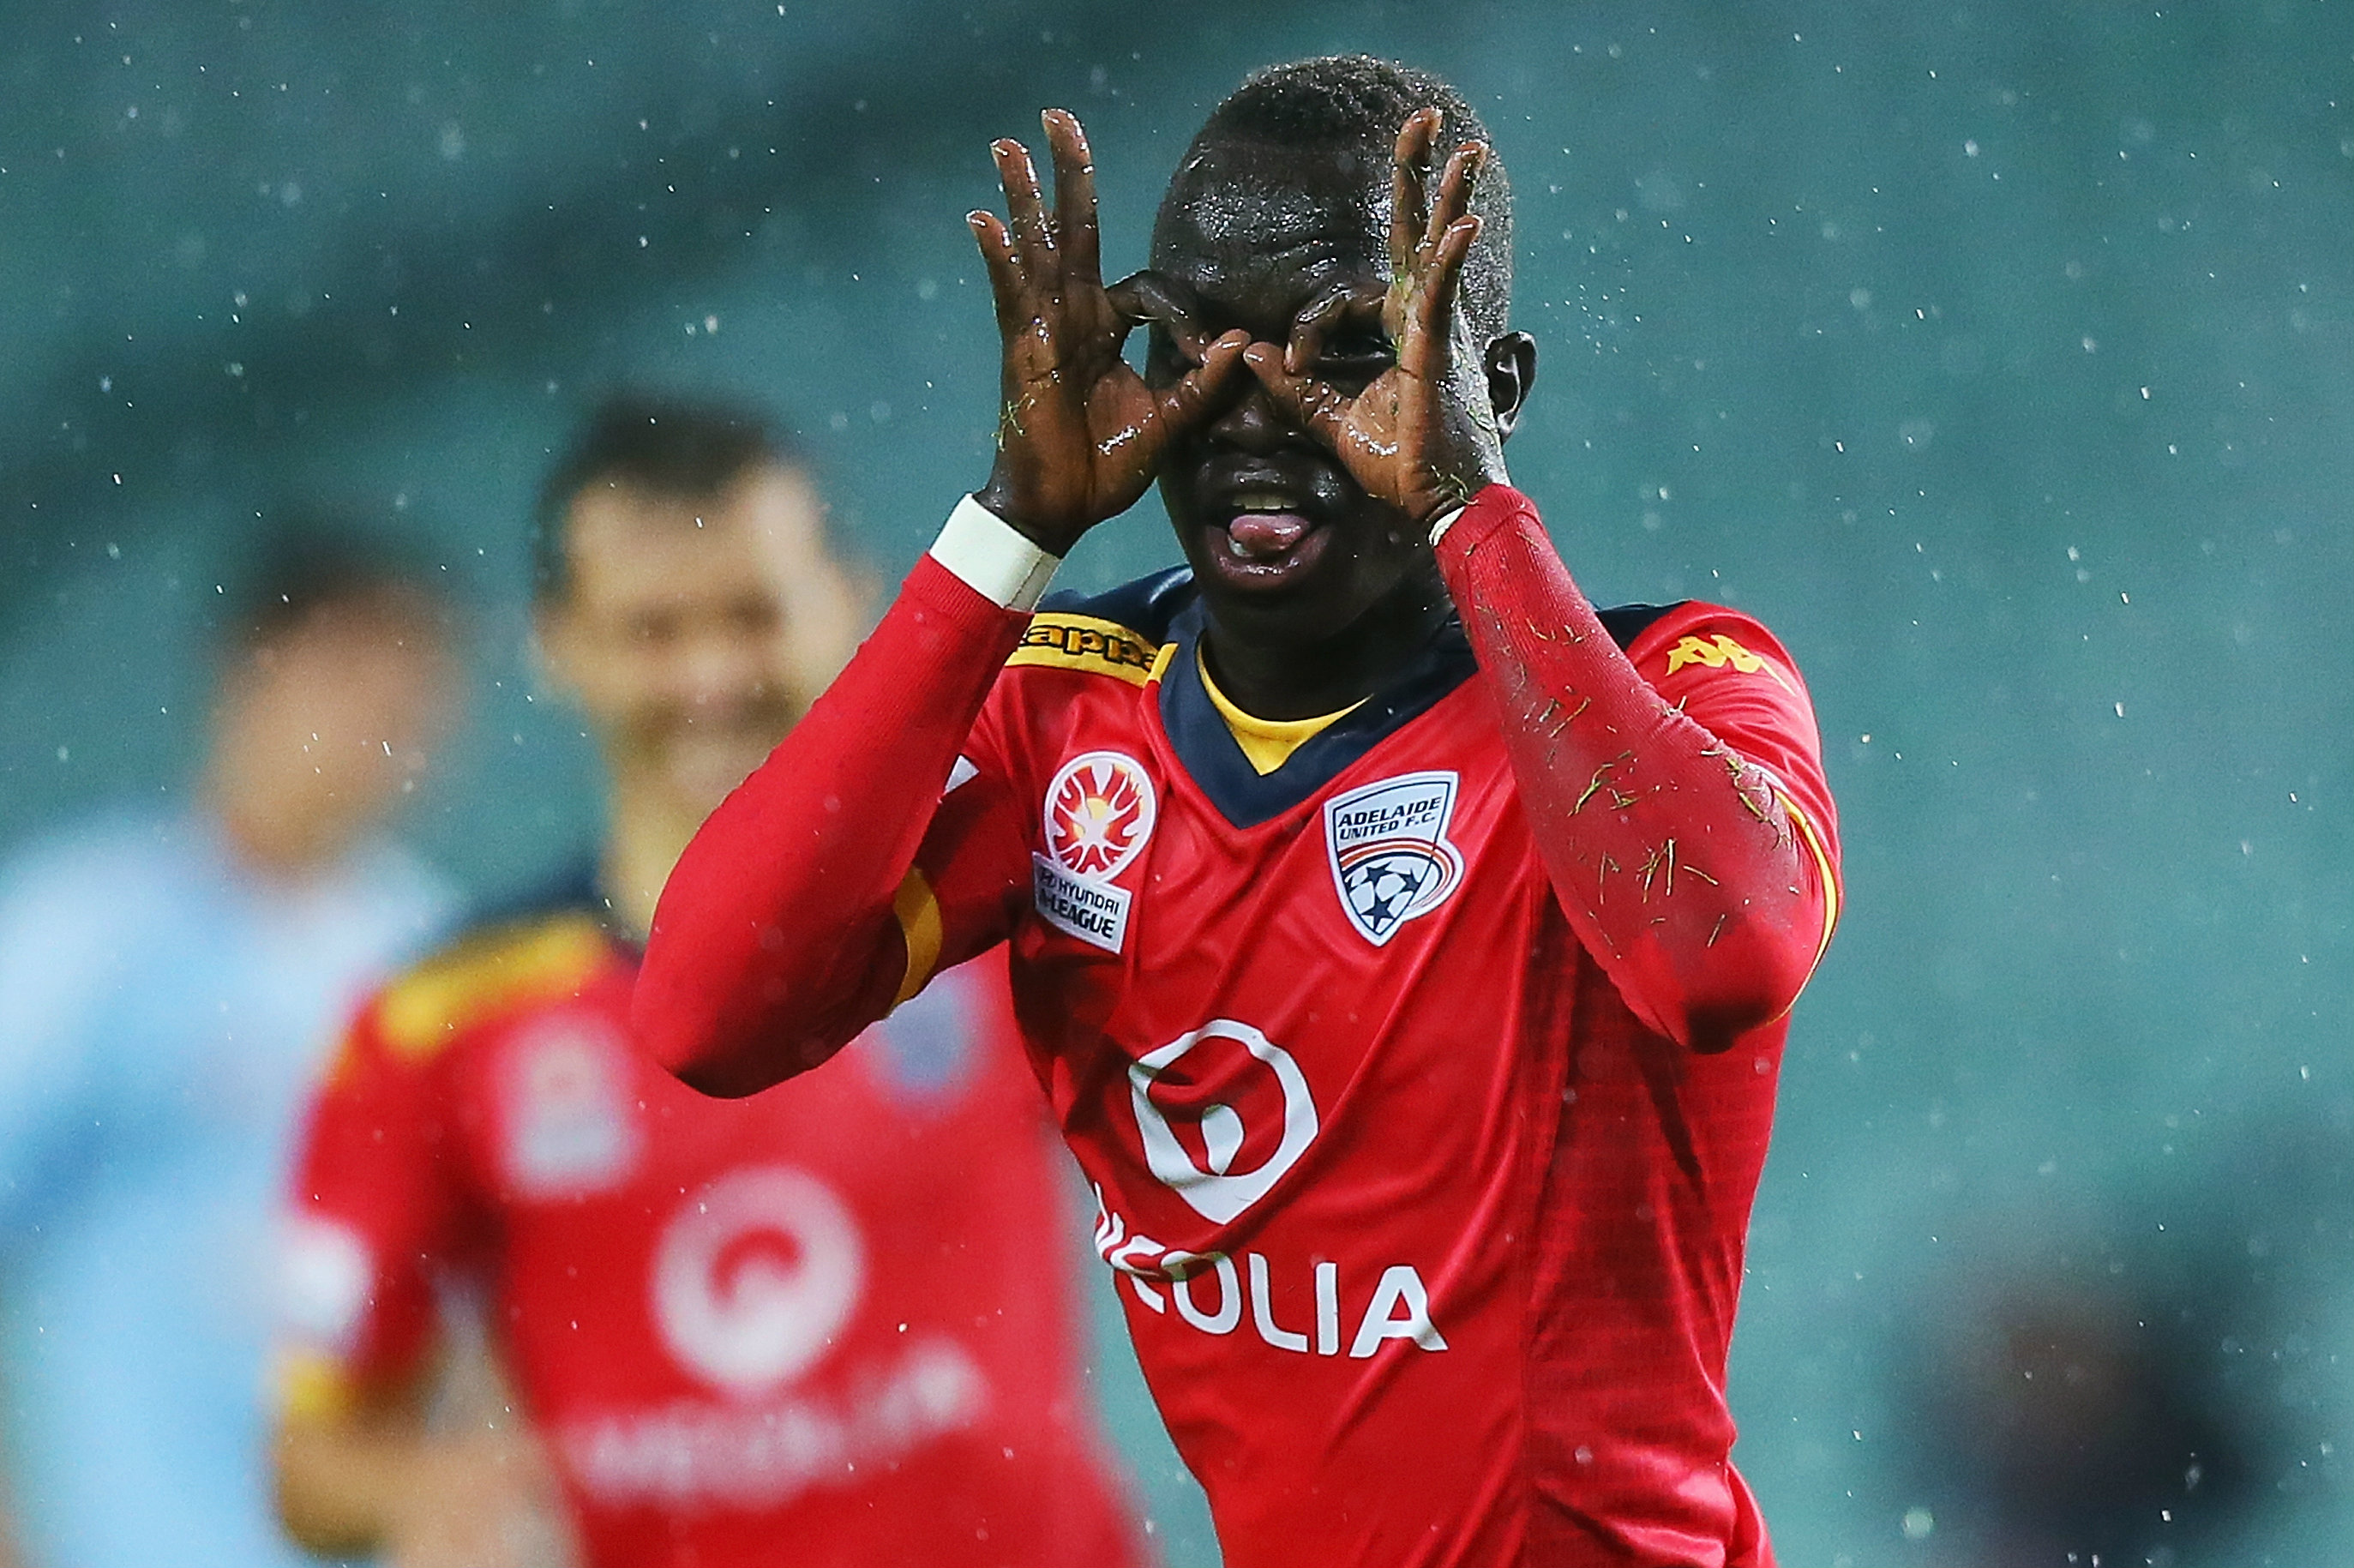 Awer Mabil celebrating a goal during his time at Adelaide United.